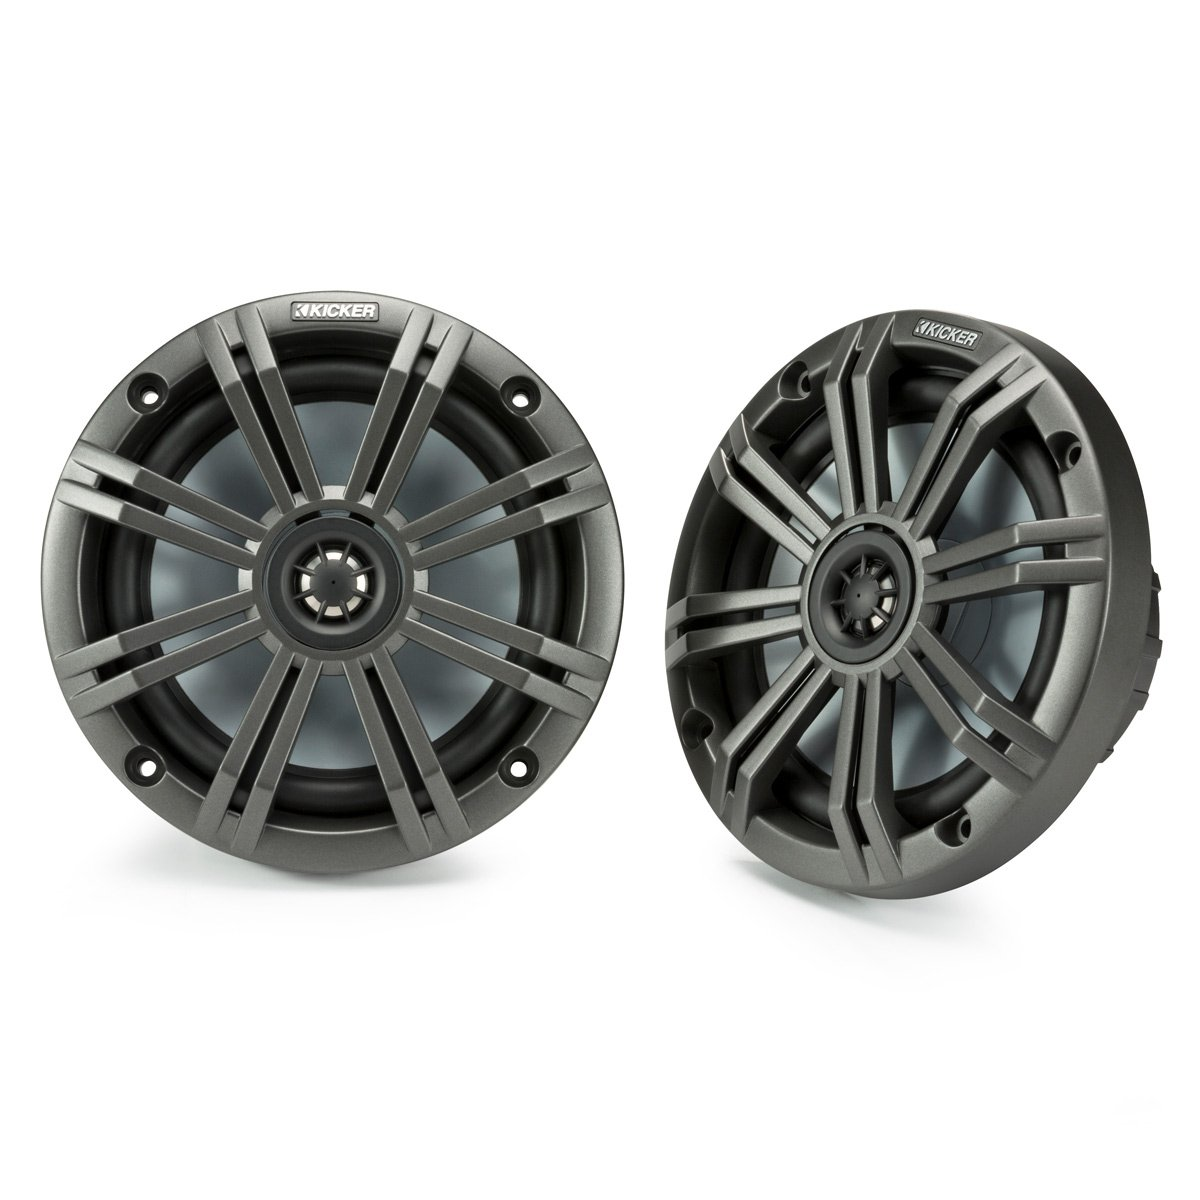 Kicker KM65 6.5-Inch (165mm) Marine Coaxial Speakers with 3/4-Inch (20mm) Tweeters, 4-Ohm, Charcoal and White Grilles by Kicker (Image #1)